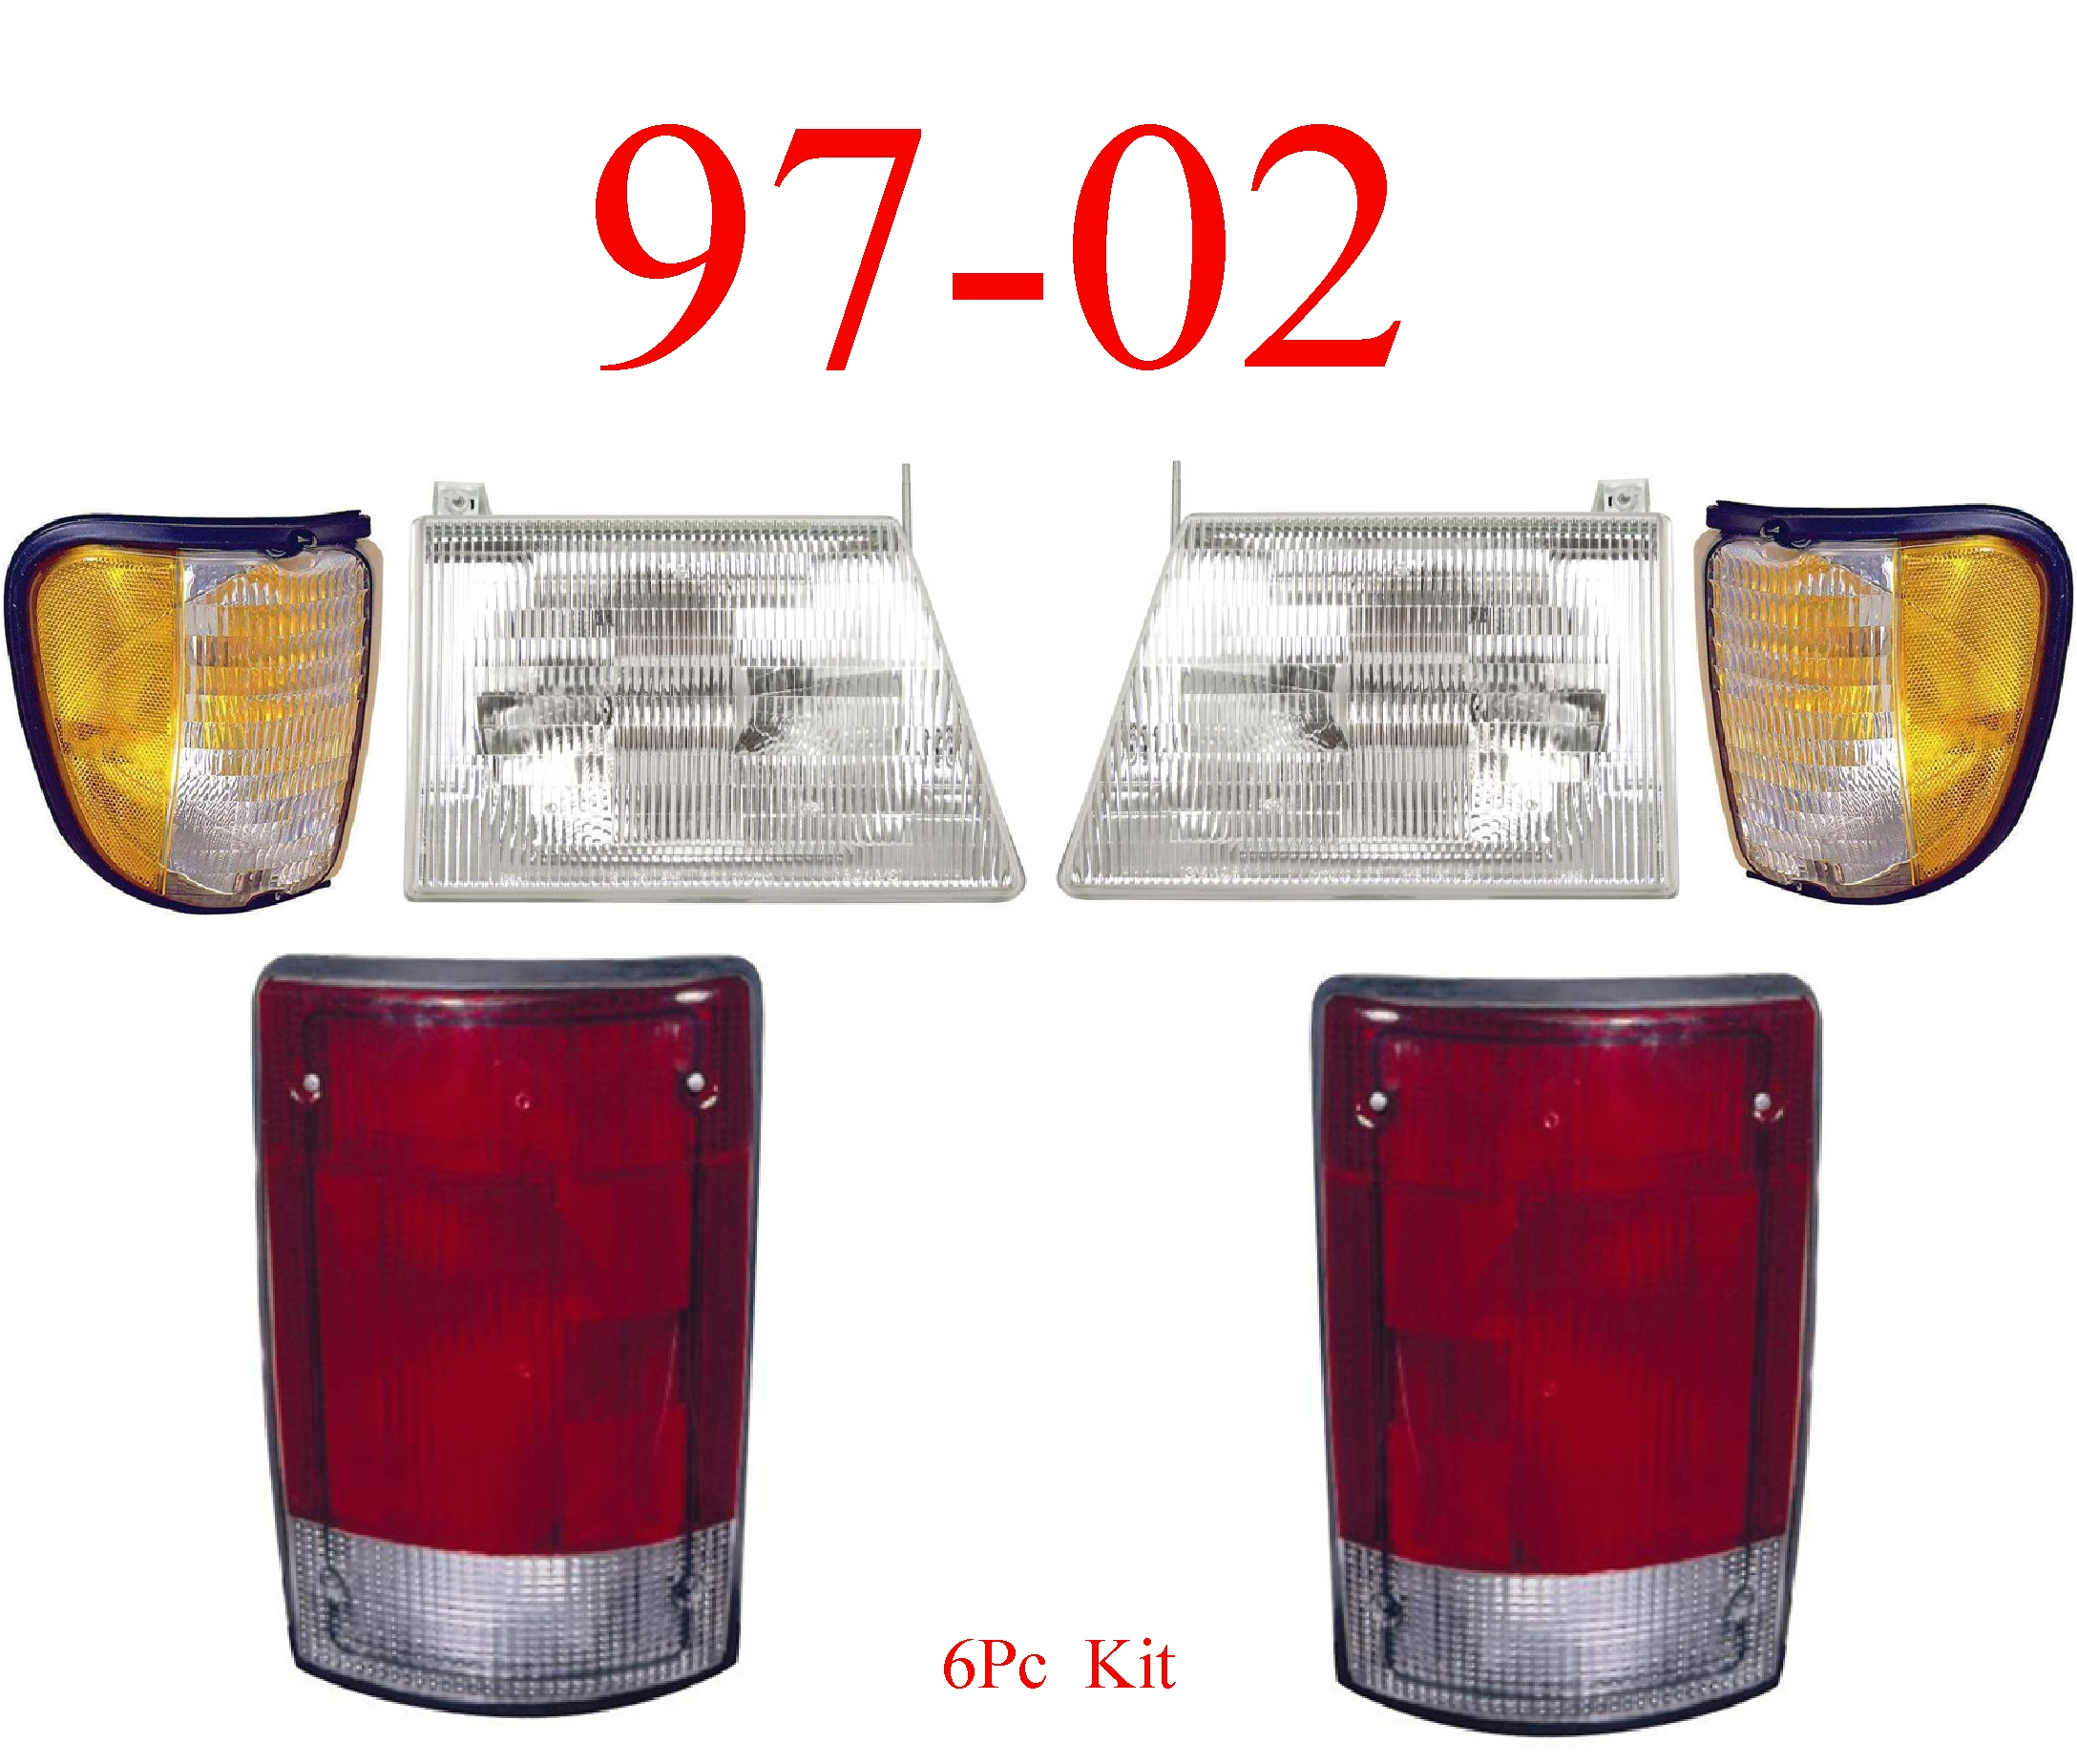 97-02 Ford Econoline 6Pc Head, Side & Tail Light Kit